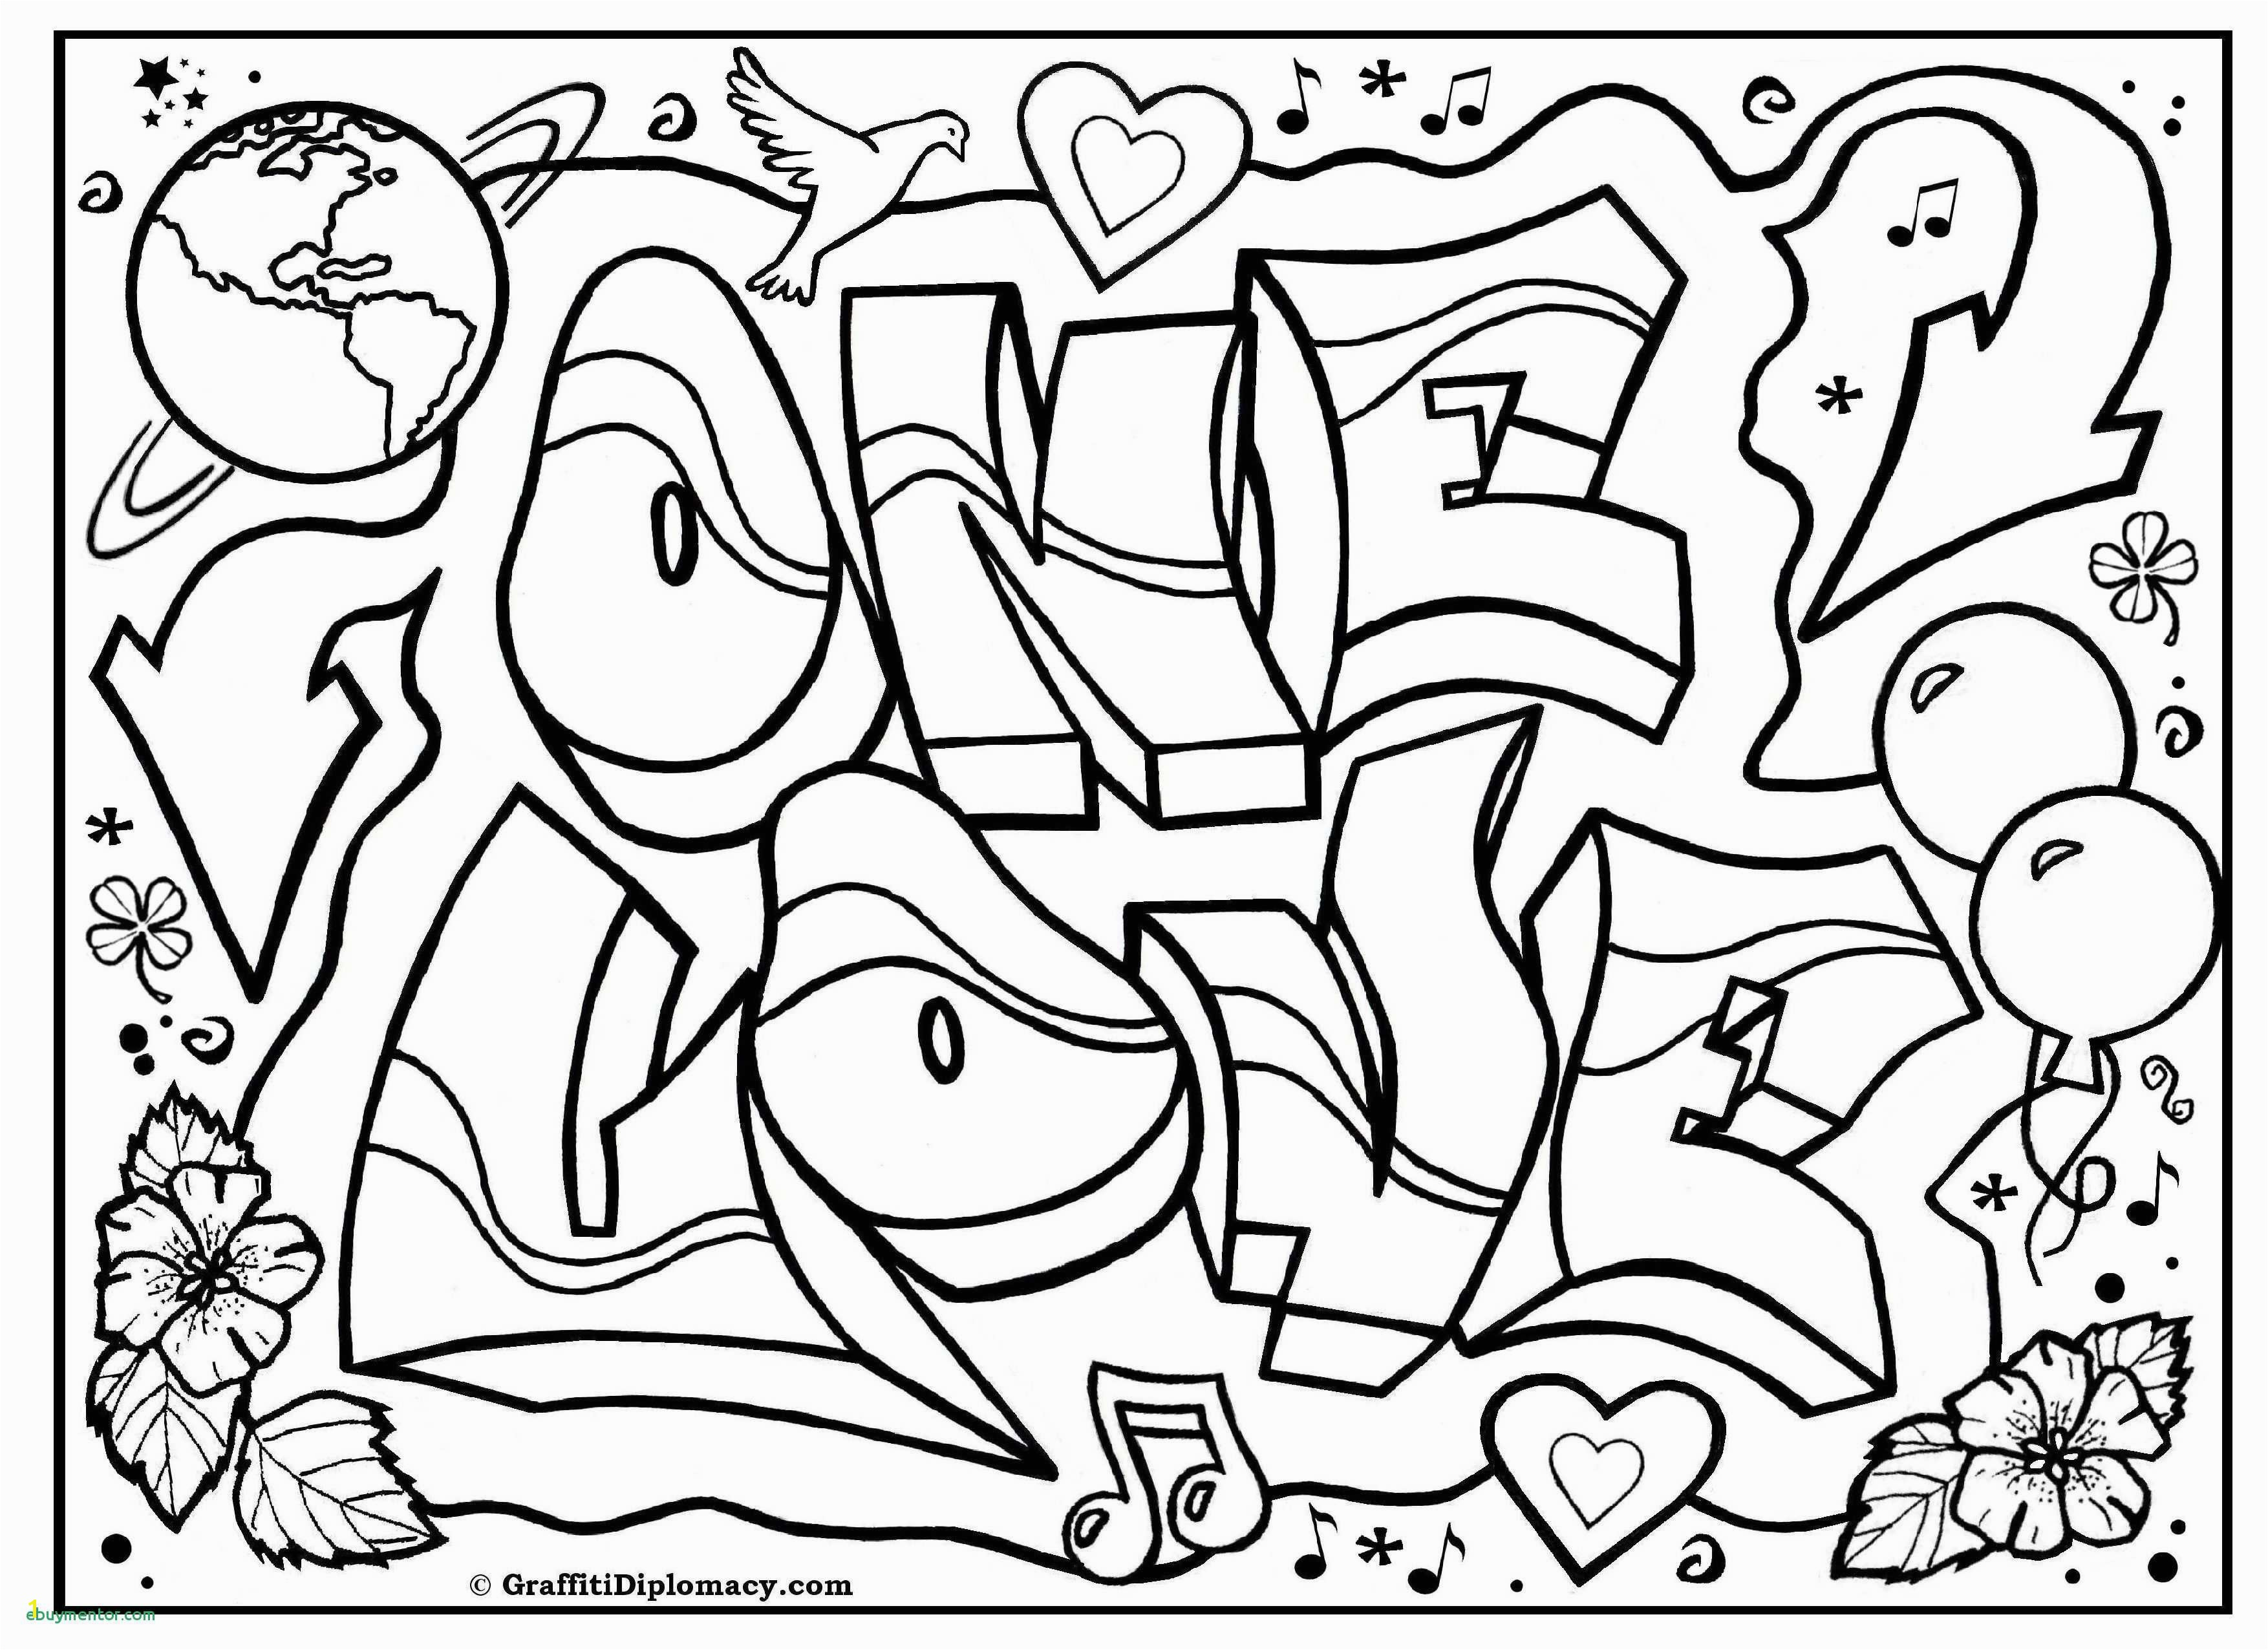 Coloring Pages Love Your Neighbor Unique Plex Coloring Pages New S S Media Cache Ak0 Pinimg 736x 0d 71 For